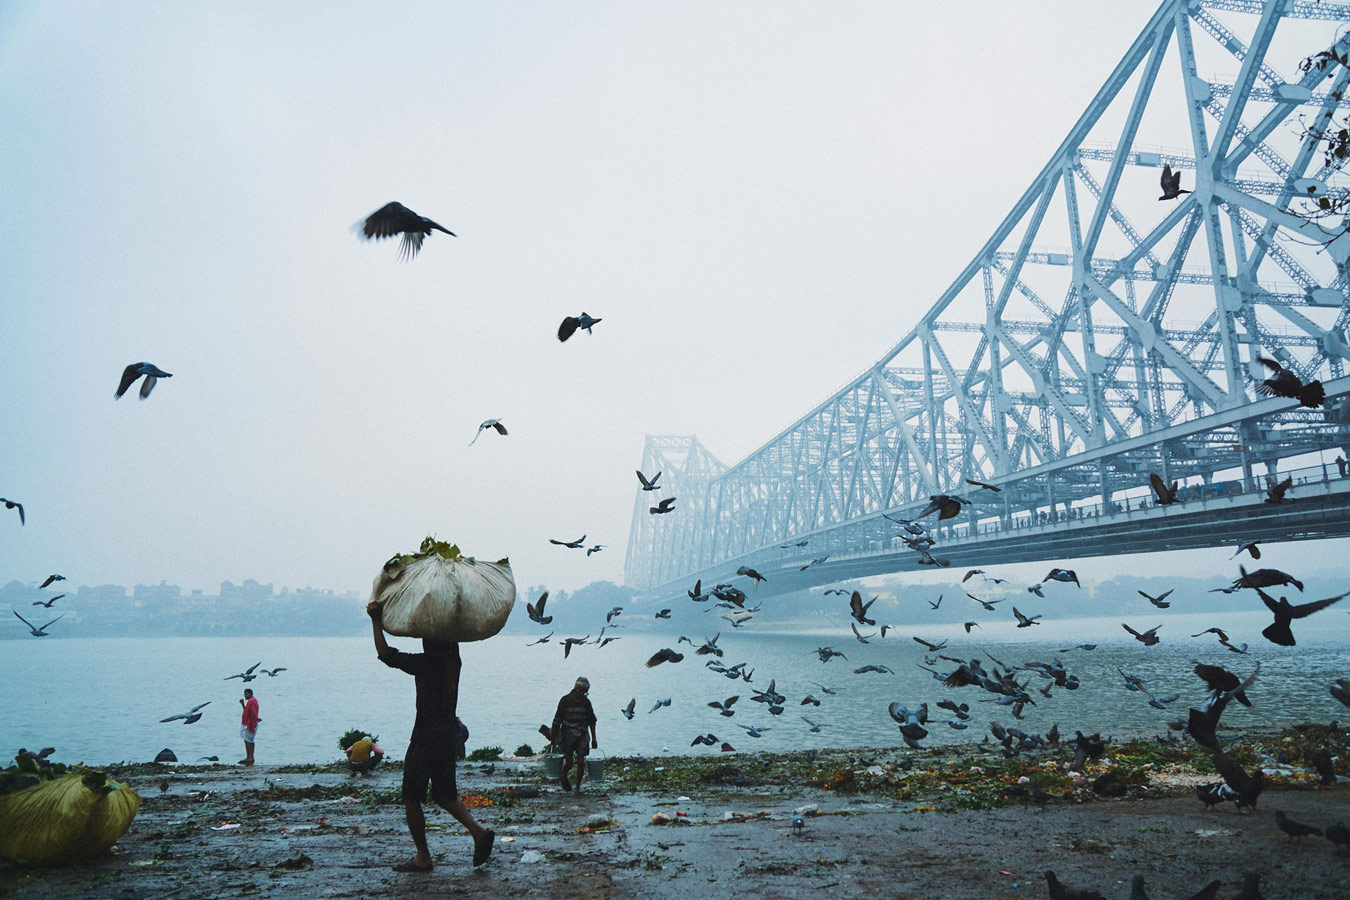 Mohammad Amir Hamja, Winner, Bangladesh National Award, 2017 Sony World Photography Awards